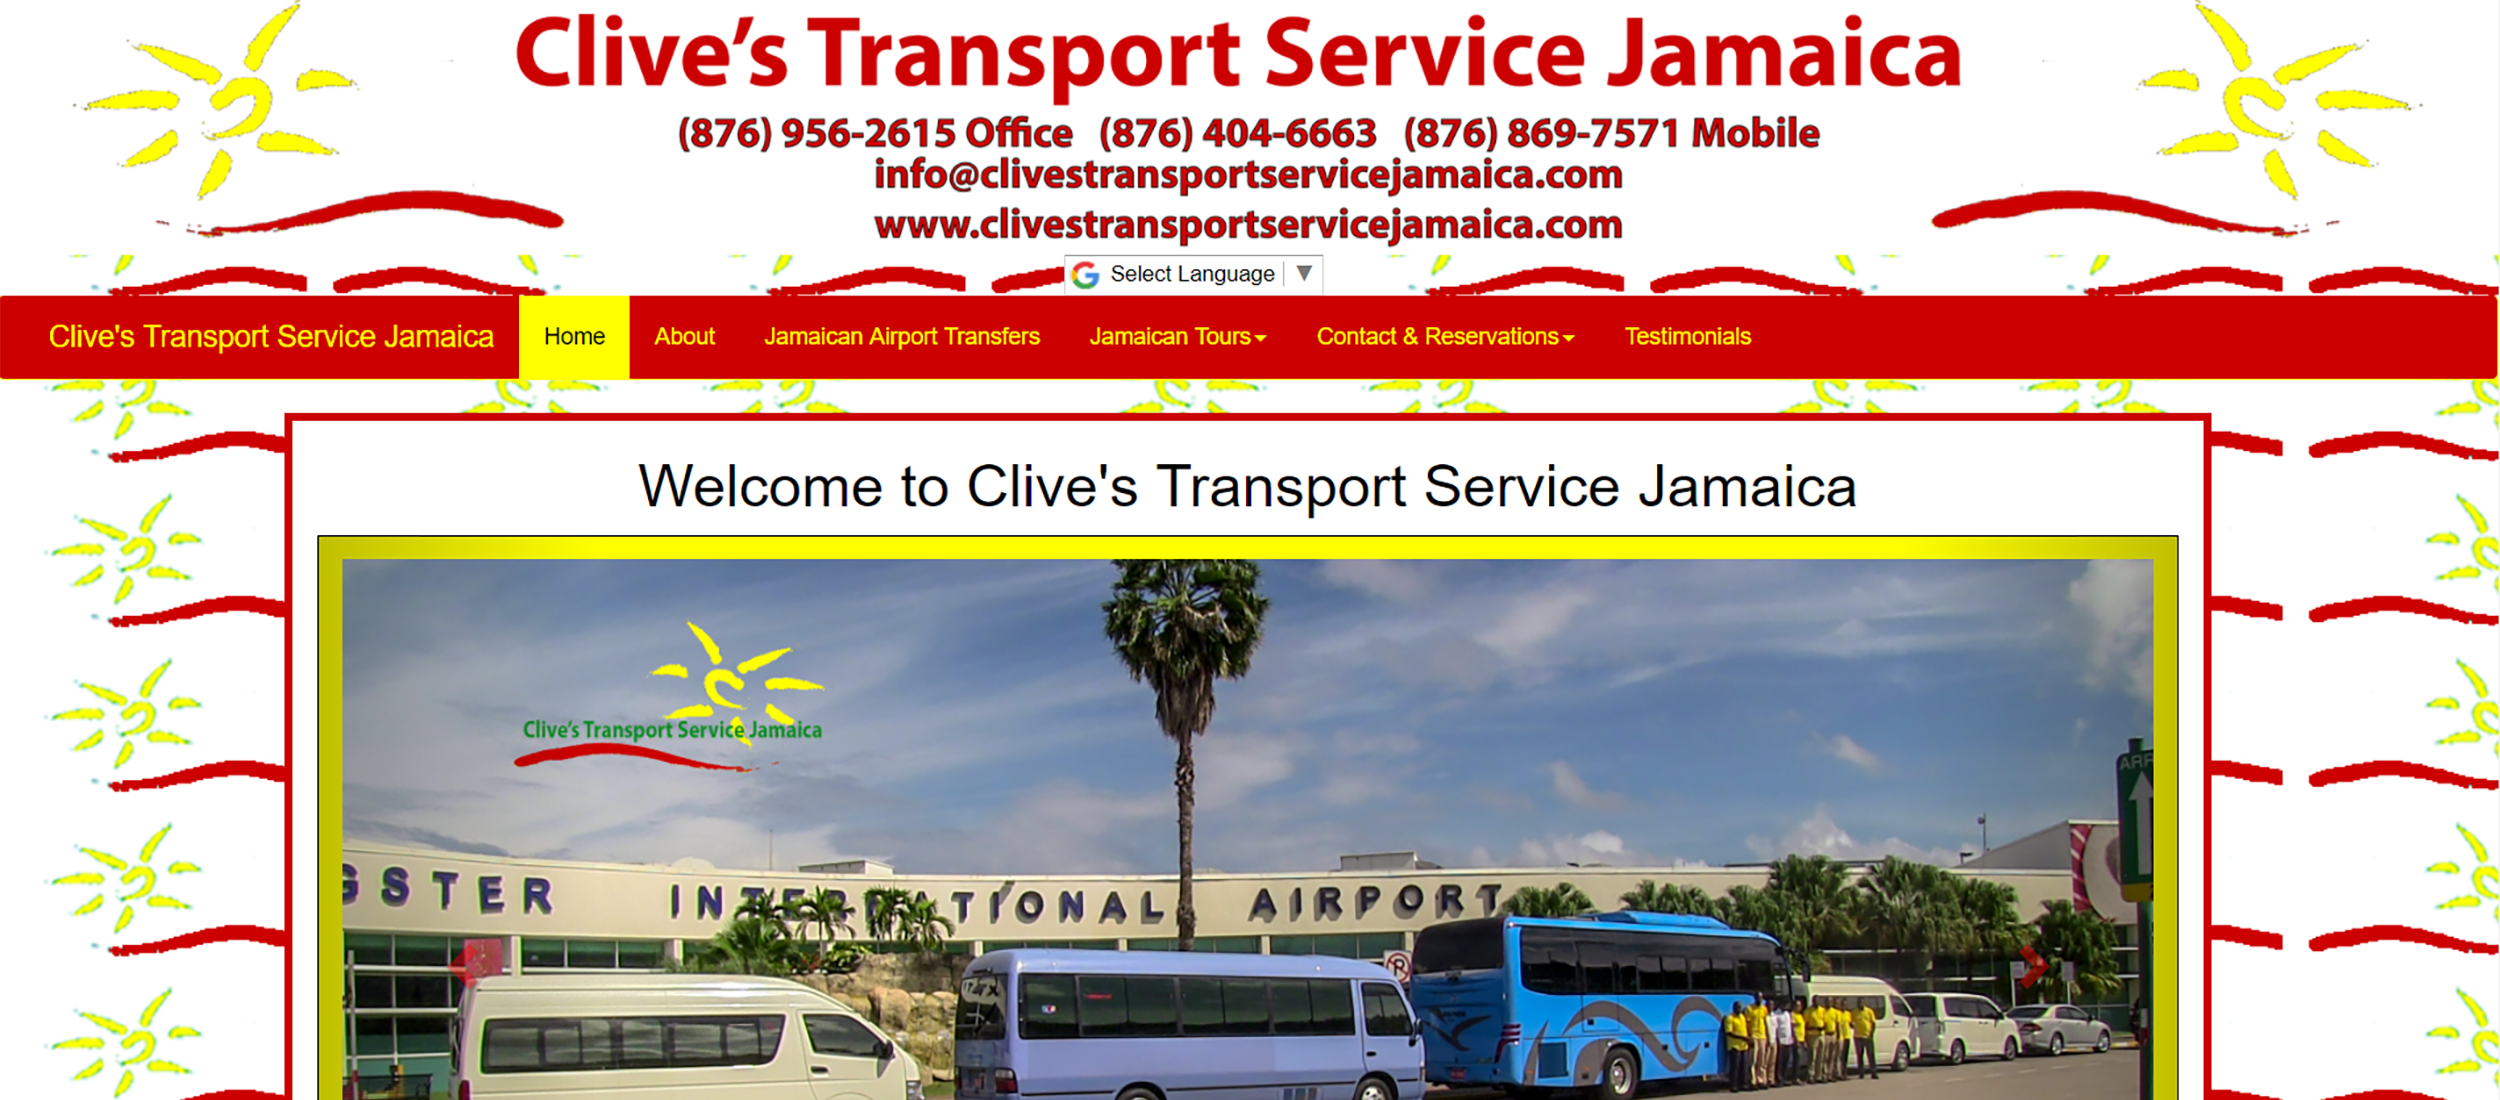 Clive's Transport Service Jamaica by Barry J. Hough Sr.